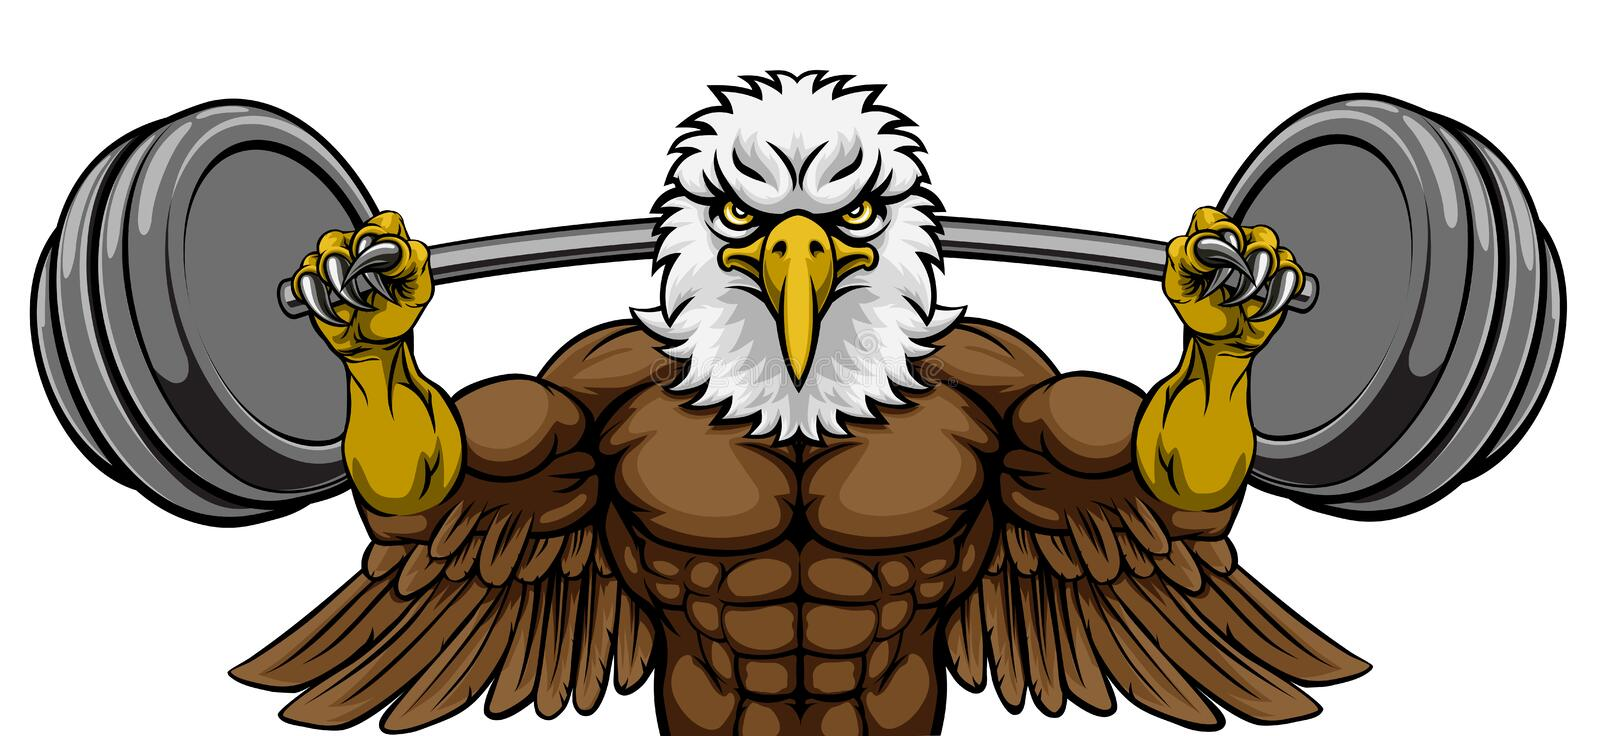 Carrossier d'Eagle Mascot Weight Lifting Barbell illustration stock